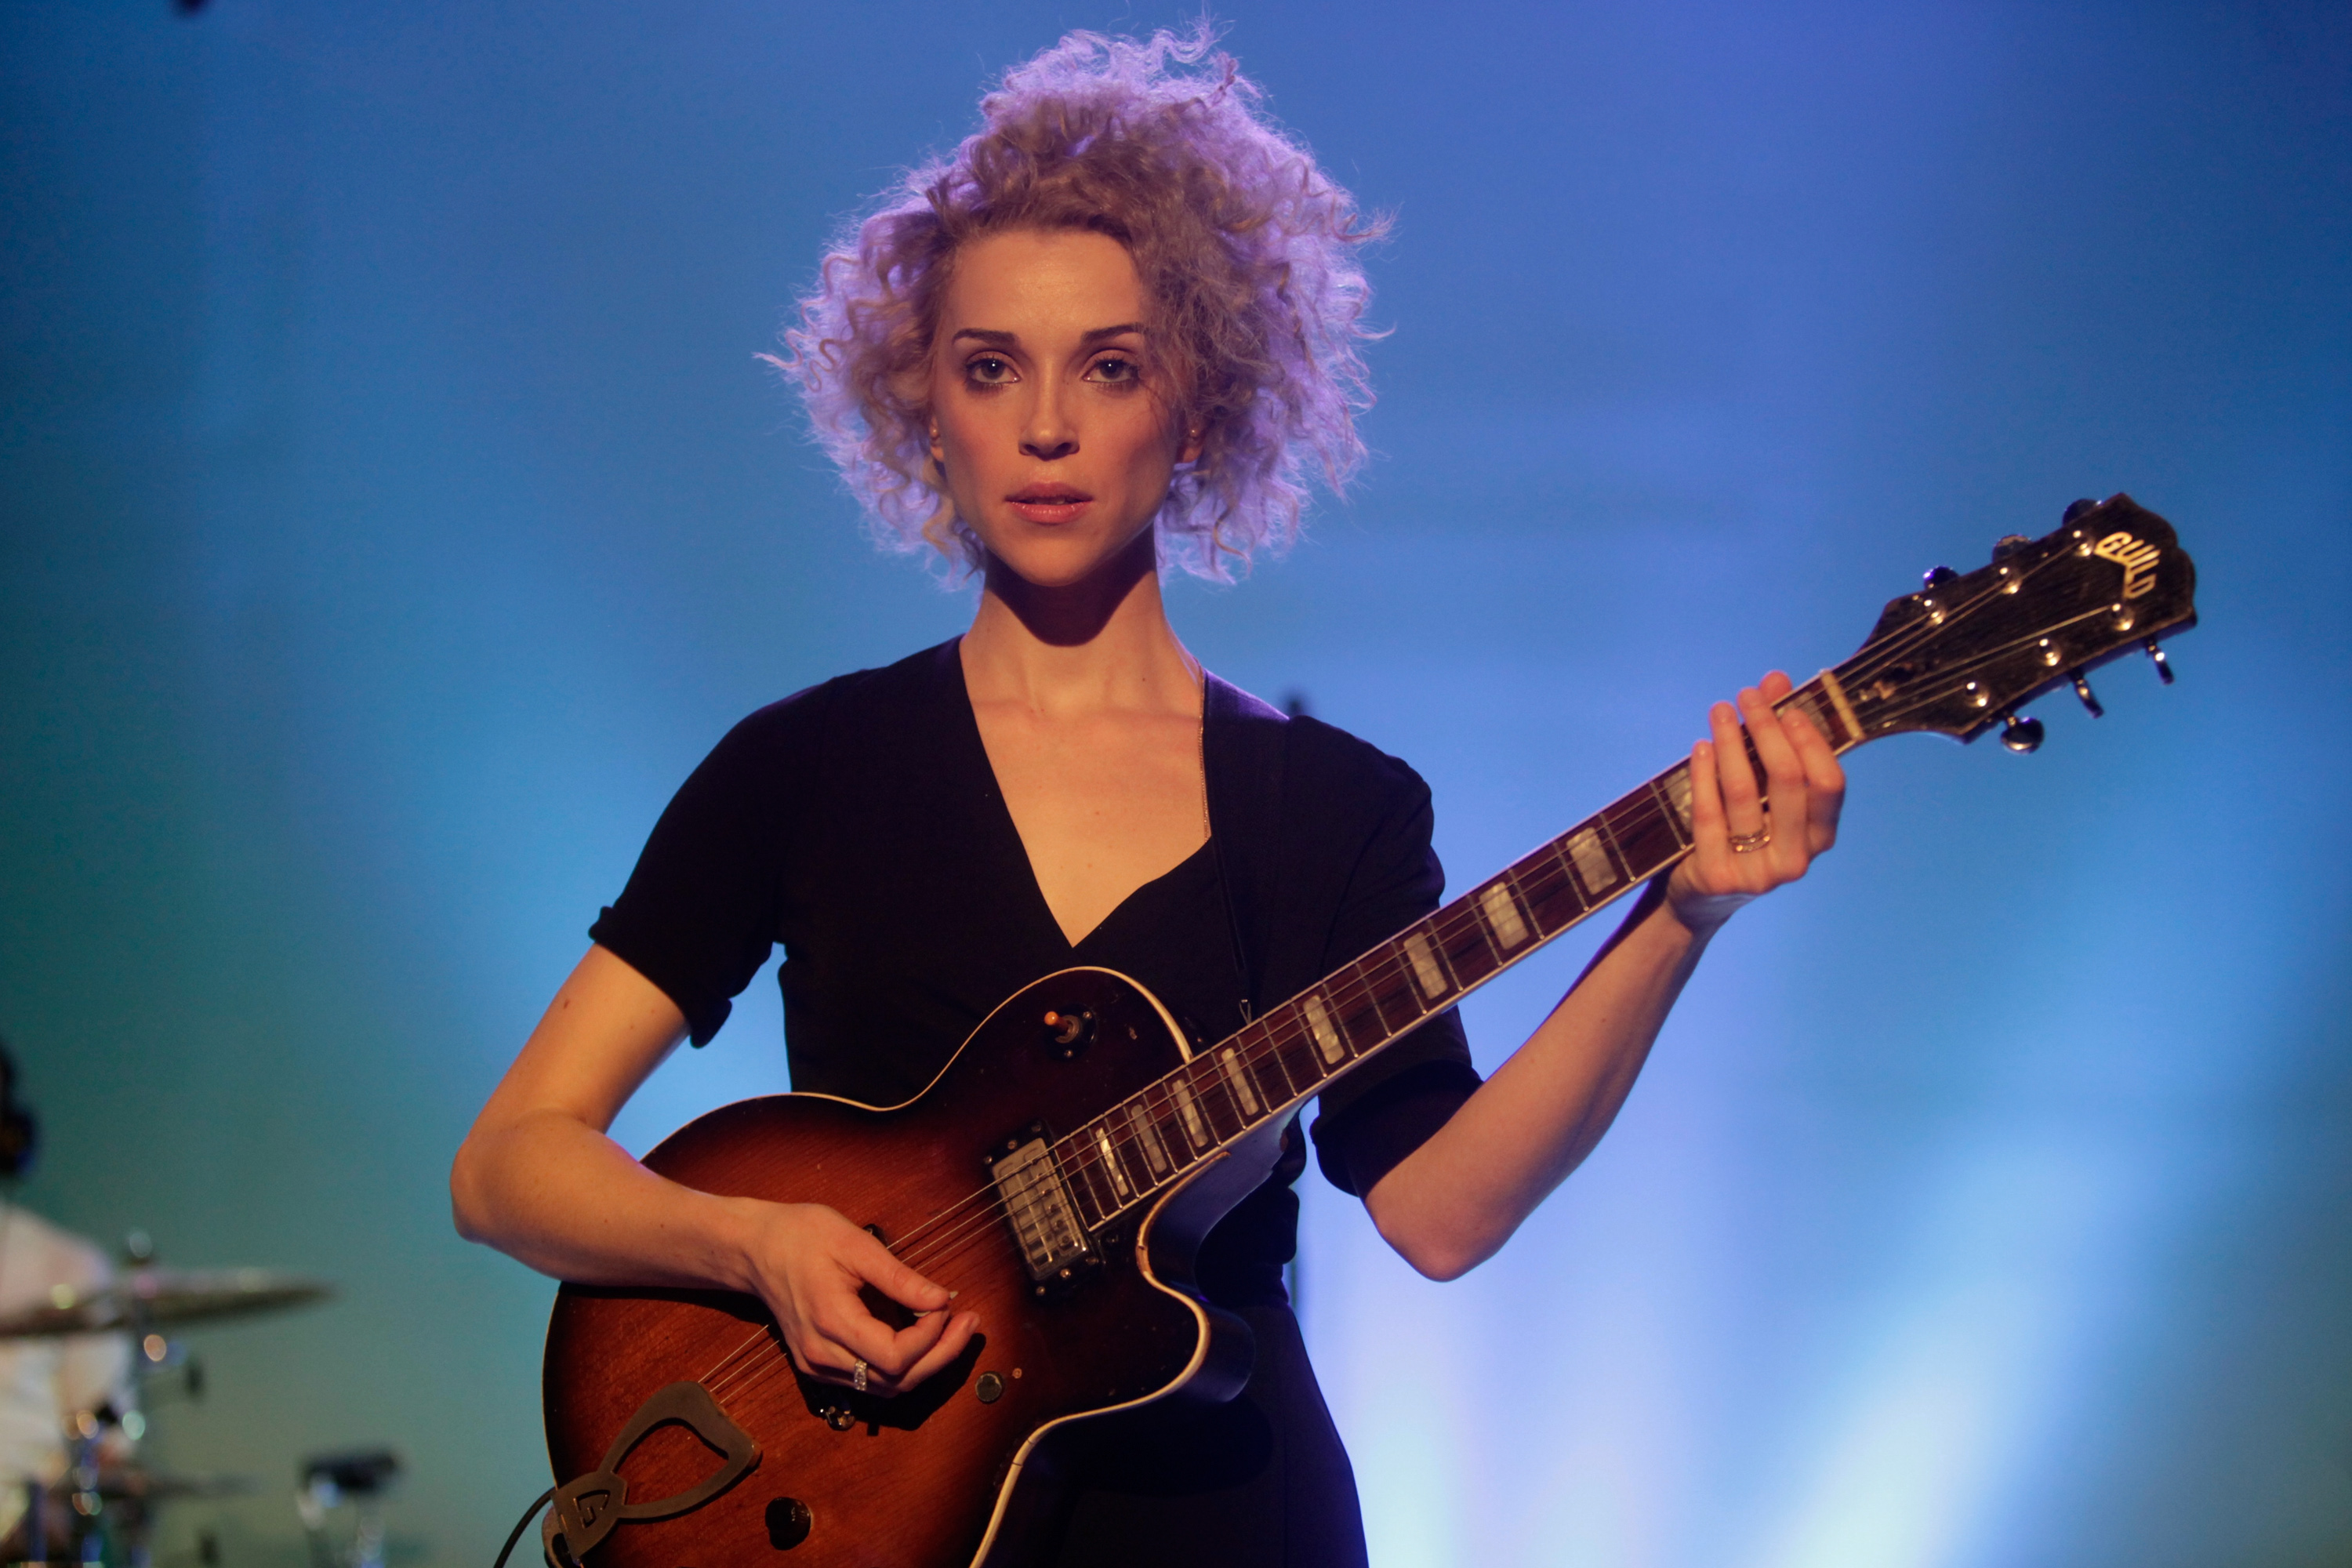 NEW YORK, NY - FEBRUARY 09: Singer/musician St. Vincent performs at the American Express UNSTAGED Fashion with DVF at Spring